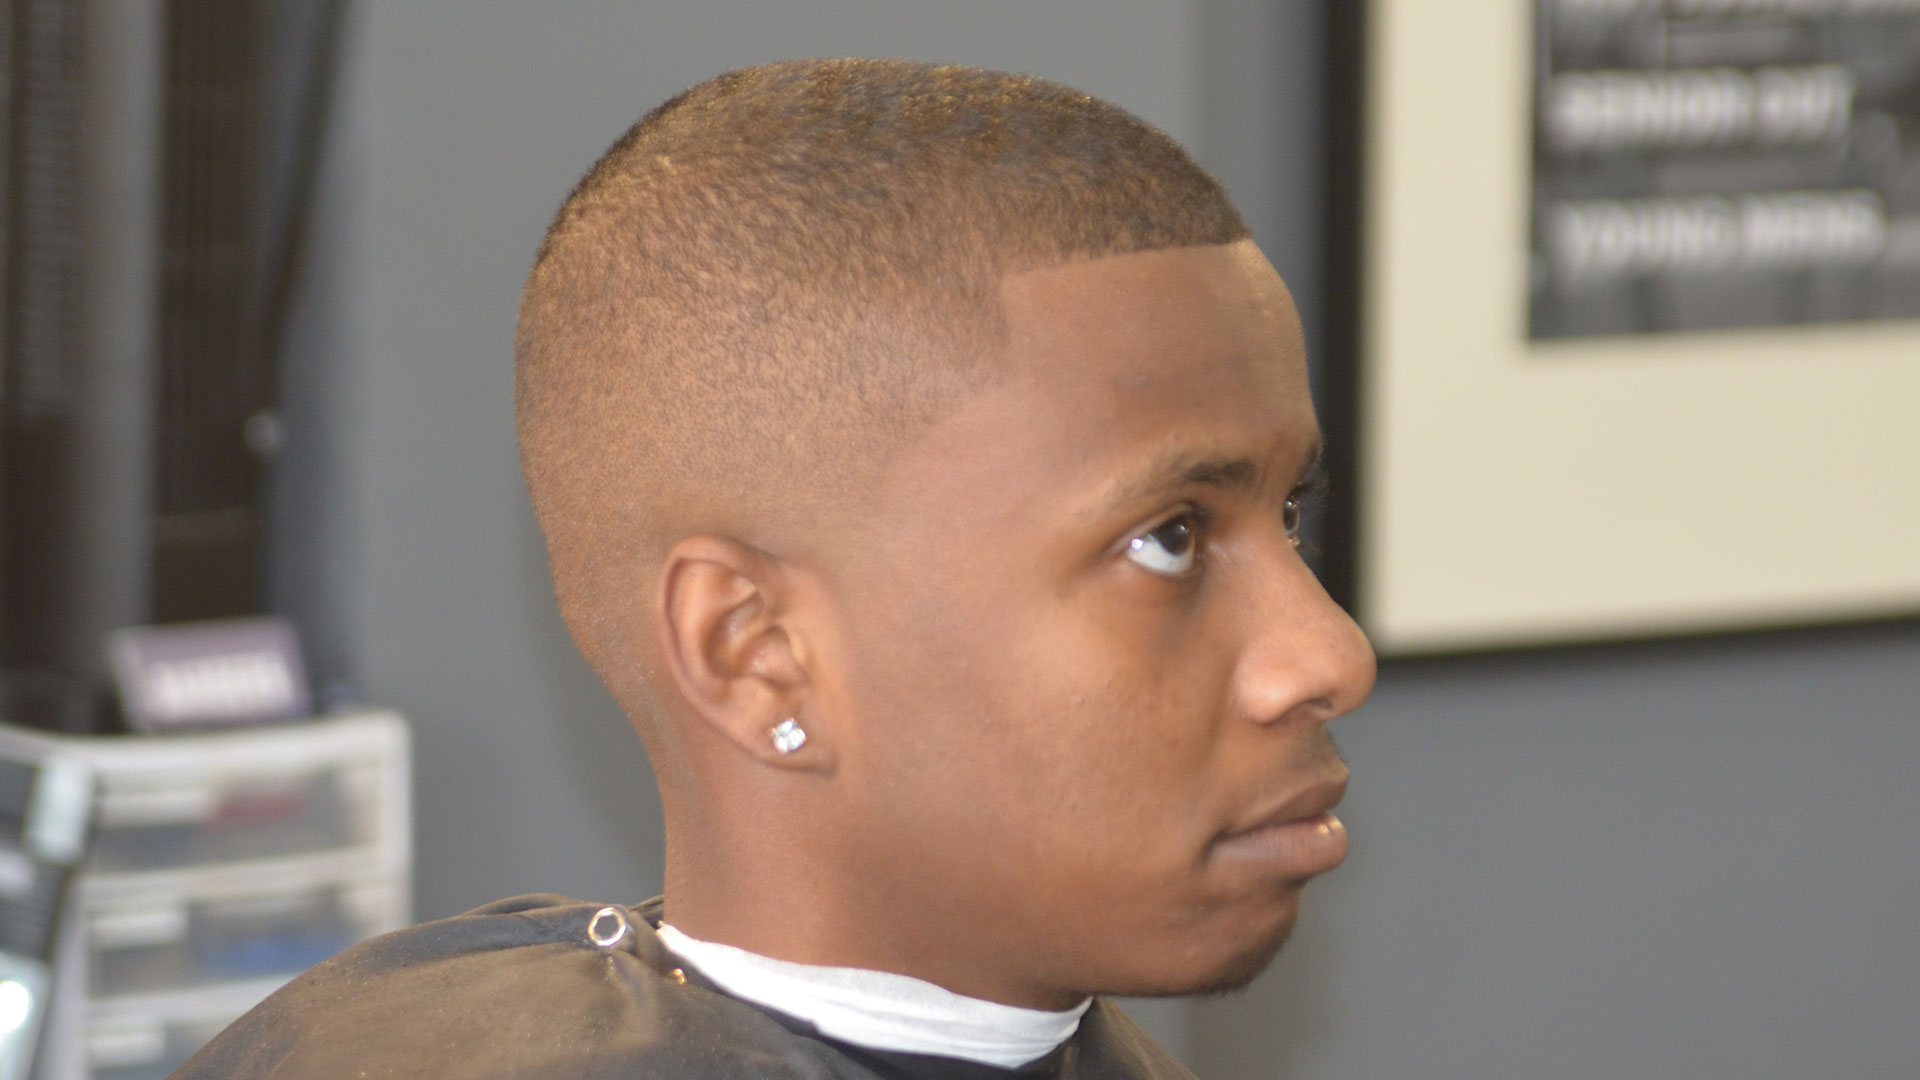 Haircut Lines on Side of Head | Bald Fade | Gentleman's Fade Haircut